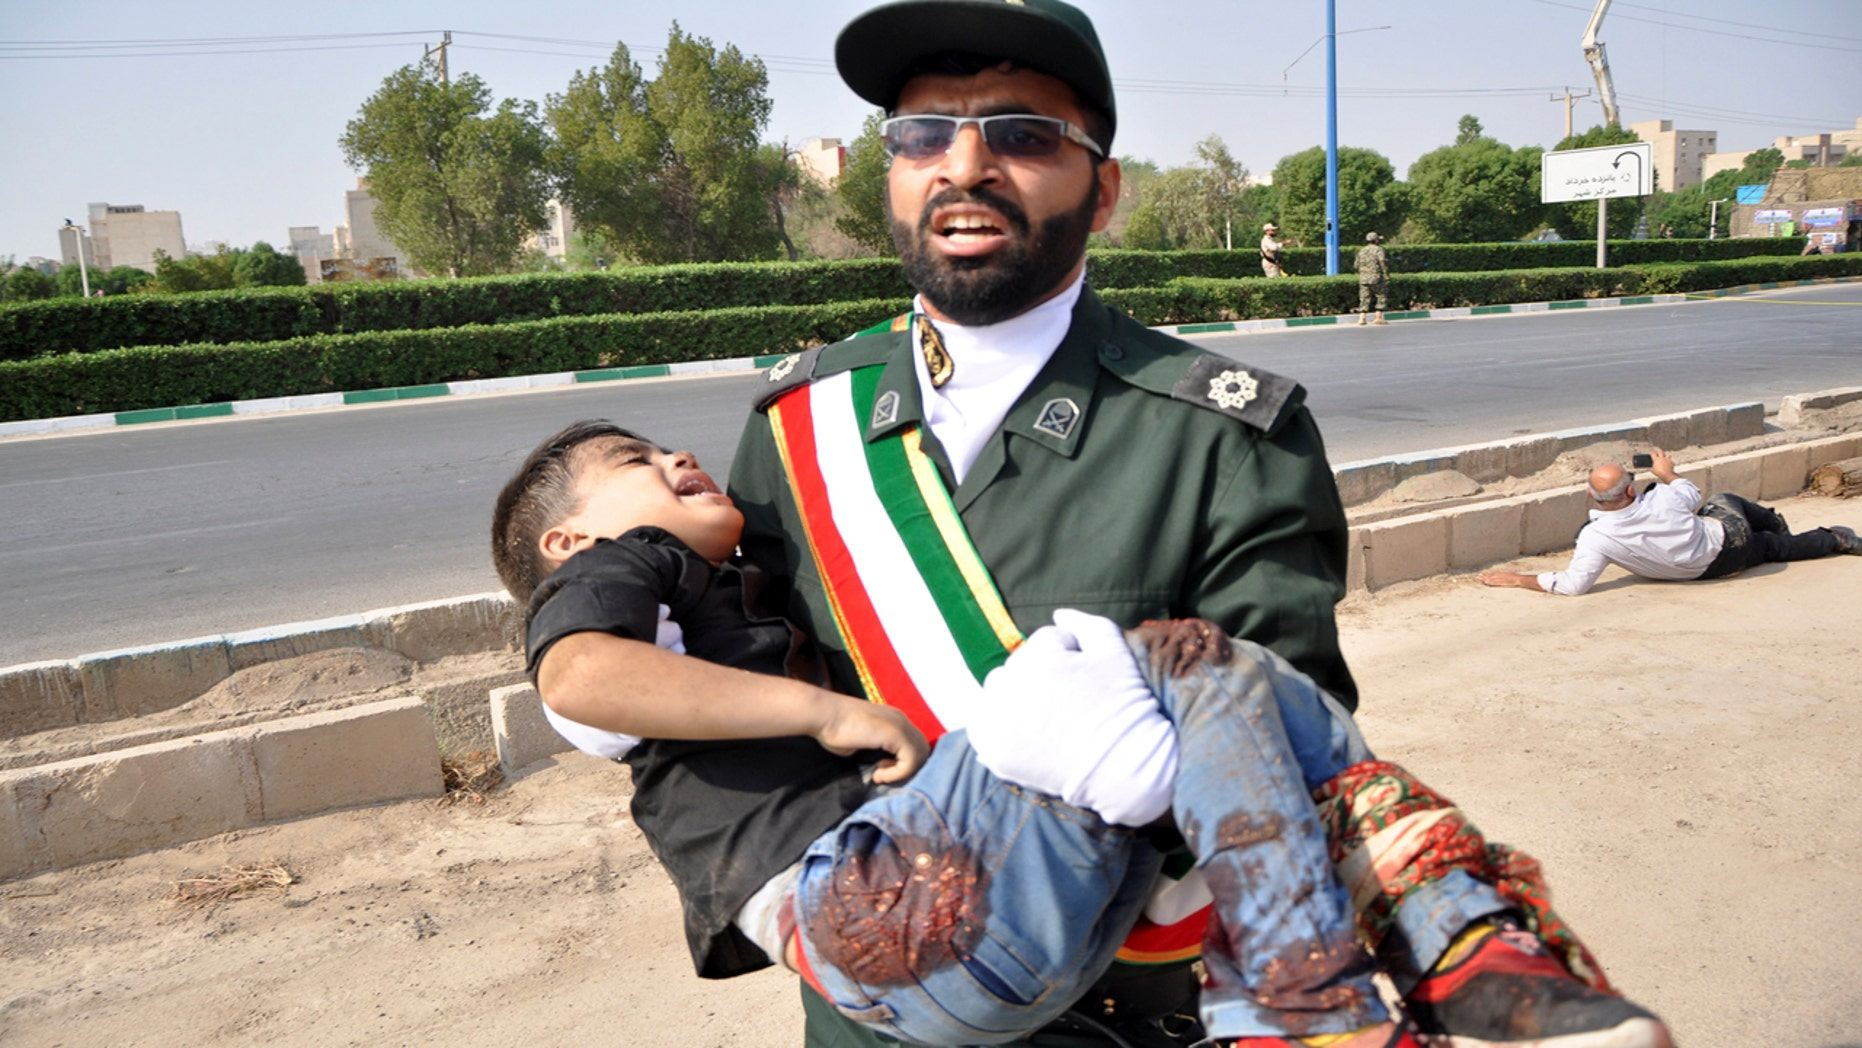 A Revolutionary Guard member carries a wounded boy after a shooting during a military parade marking the 38th anniversary of Iraq's 1980 invasion of Iran, in the southwestern city of Ahvaz, Iran, Saturday, Sept. 22, 2018.